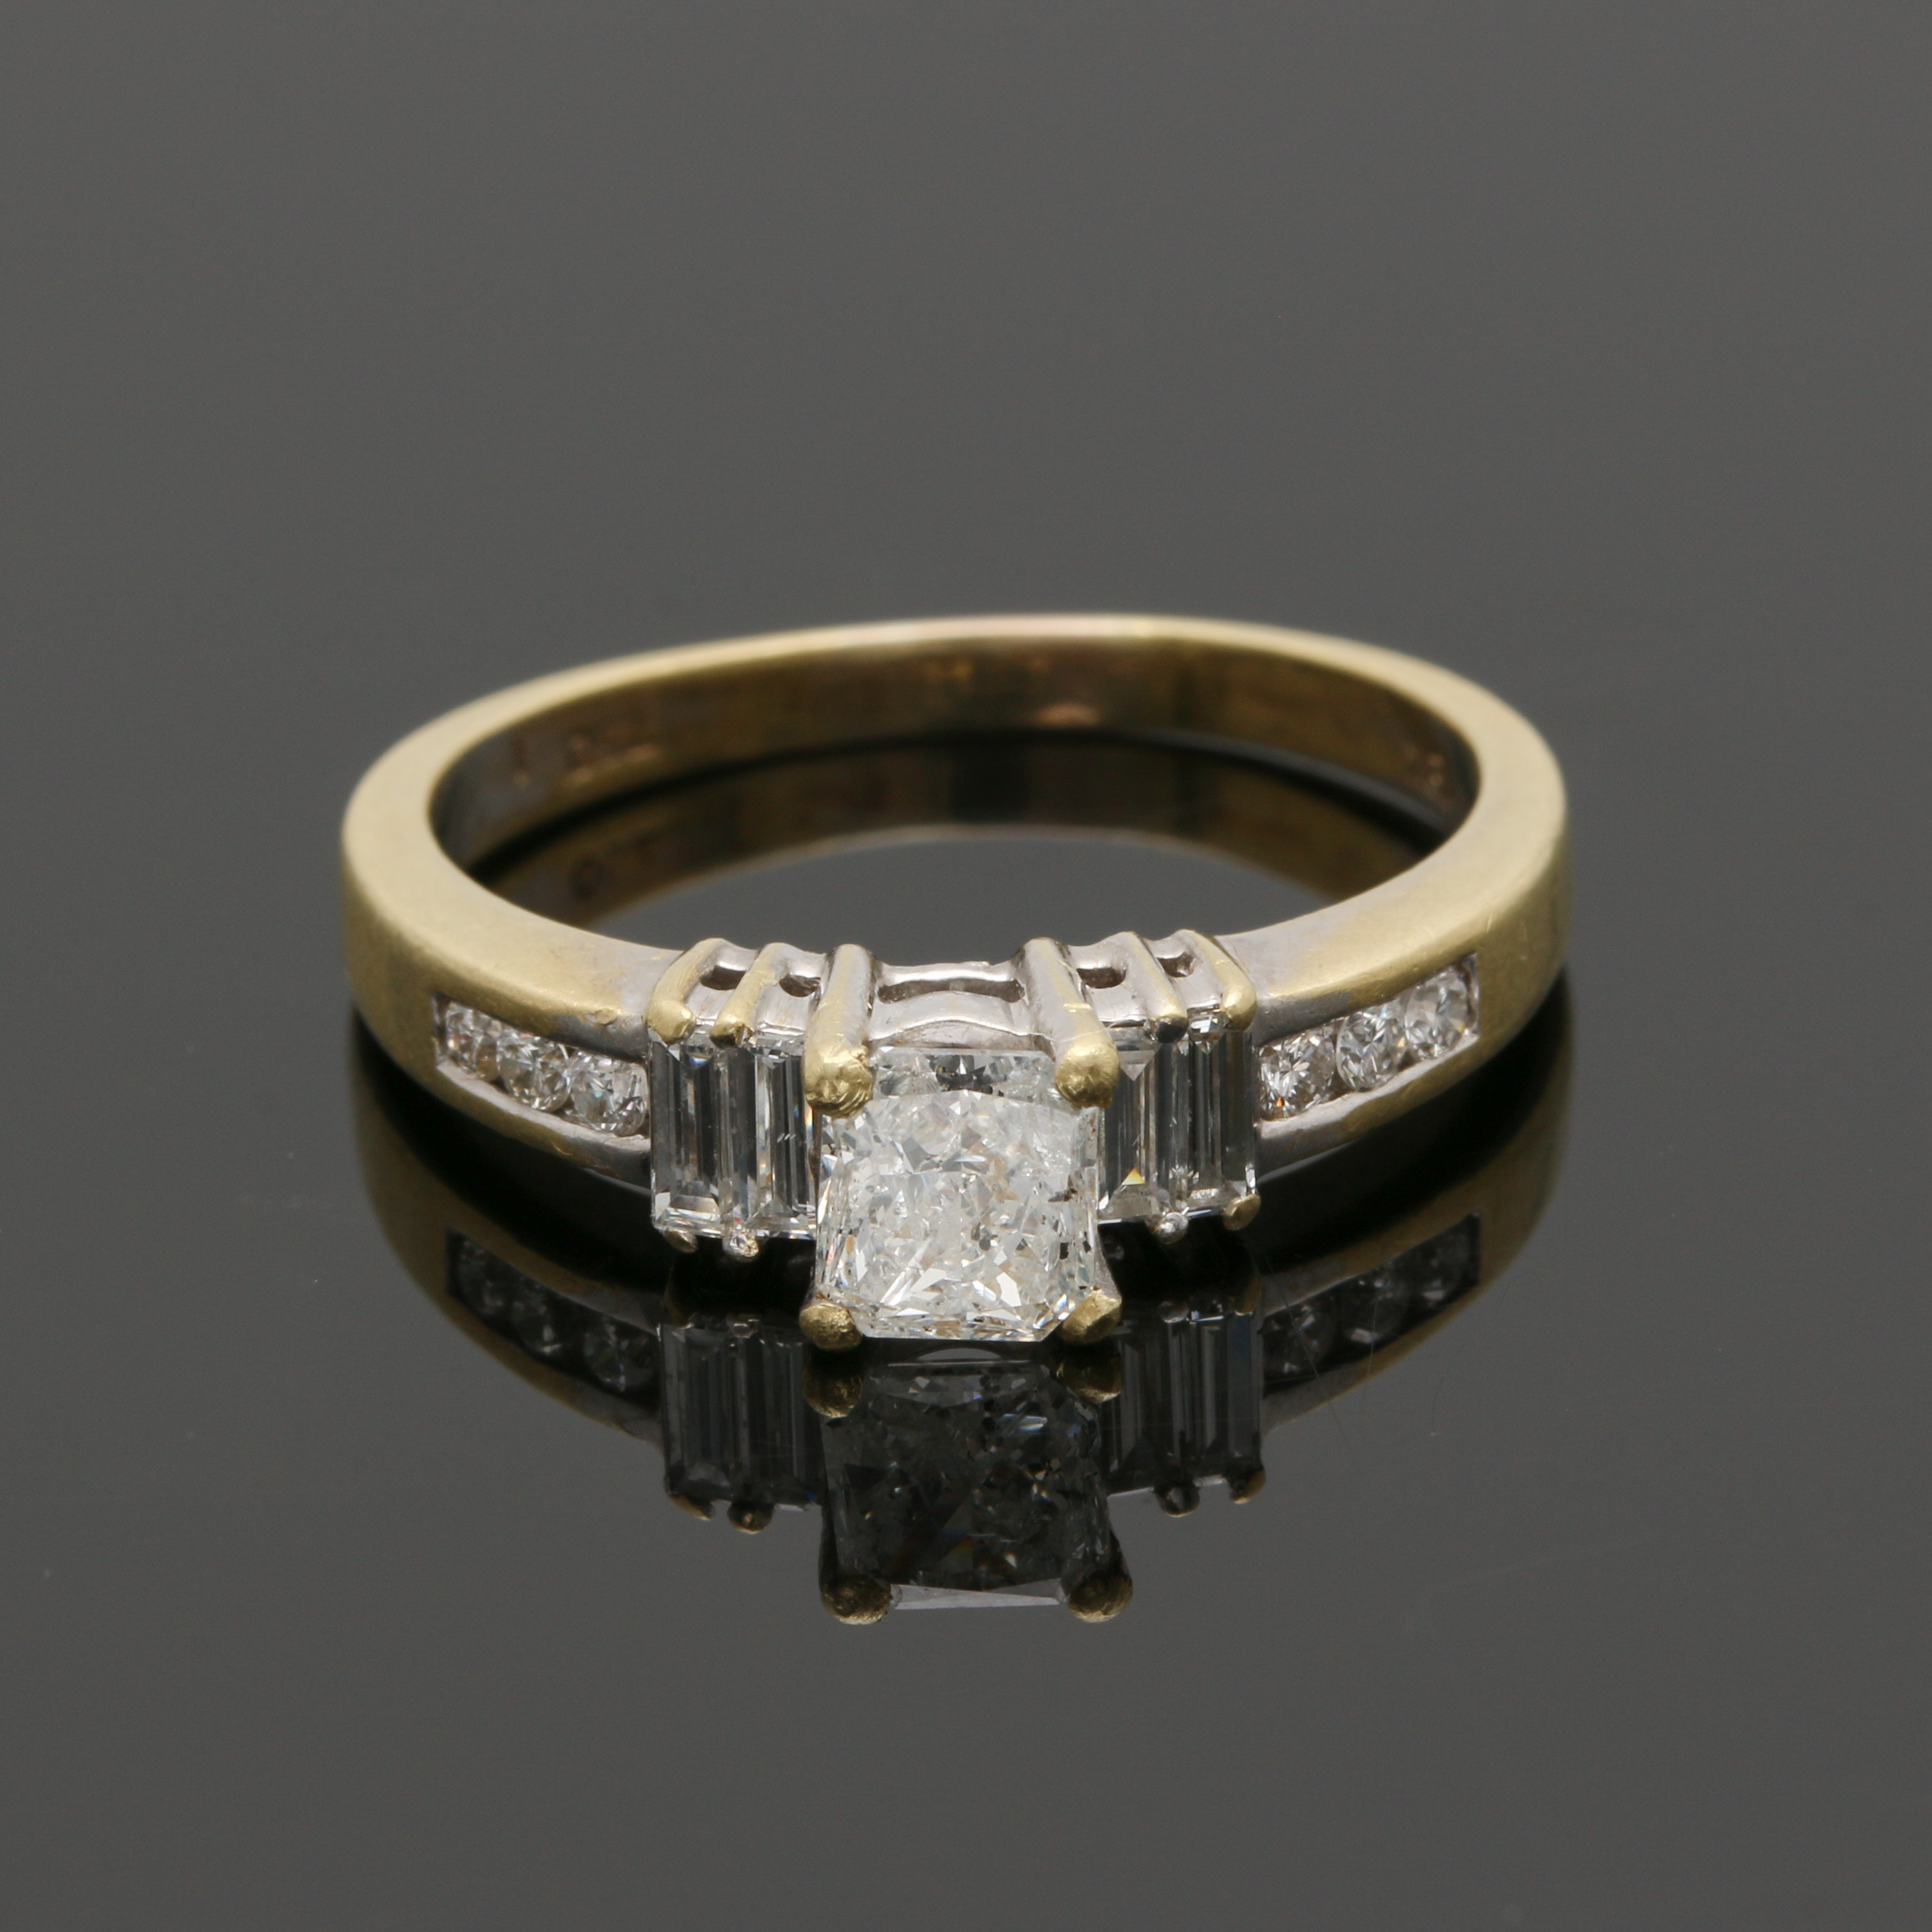 18K Yellow Gold 0.92 CTW Diamond Ring With White Gold Accents